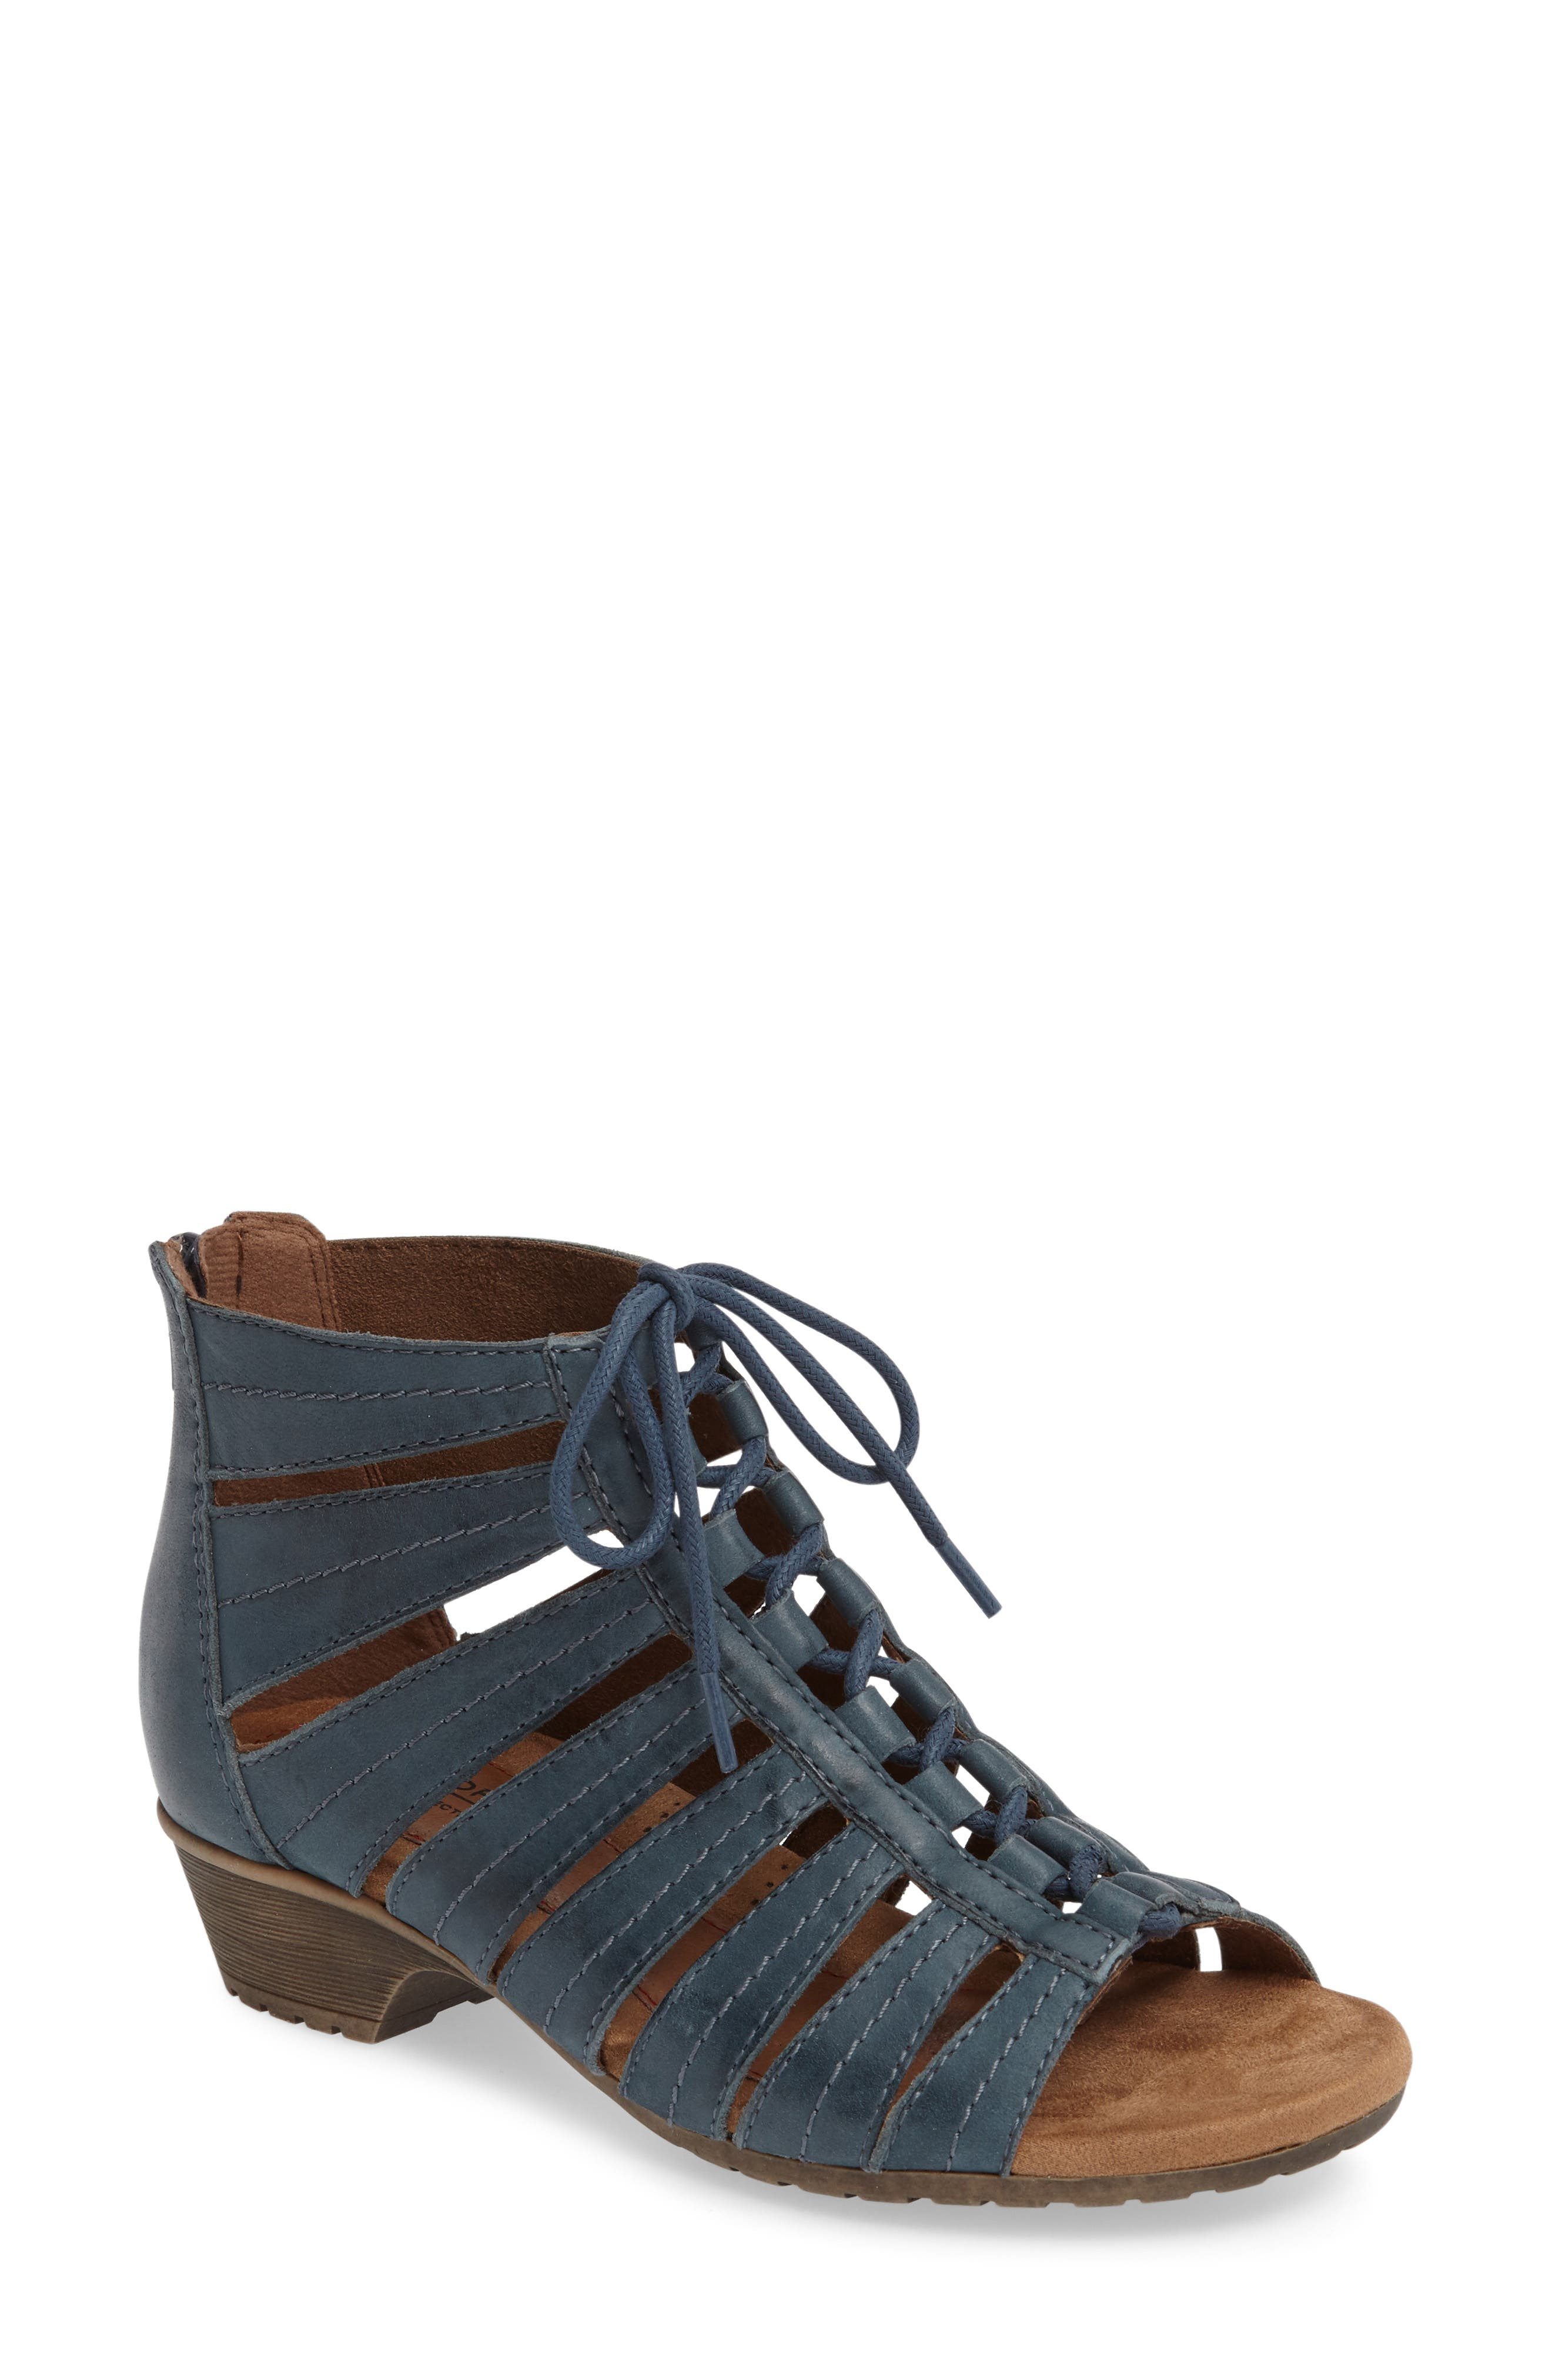 'Gabby' Lace-Up Sandal,                             Main thumbnail 7, color,